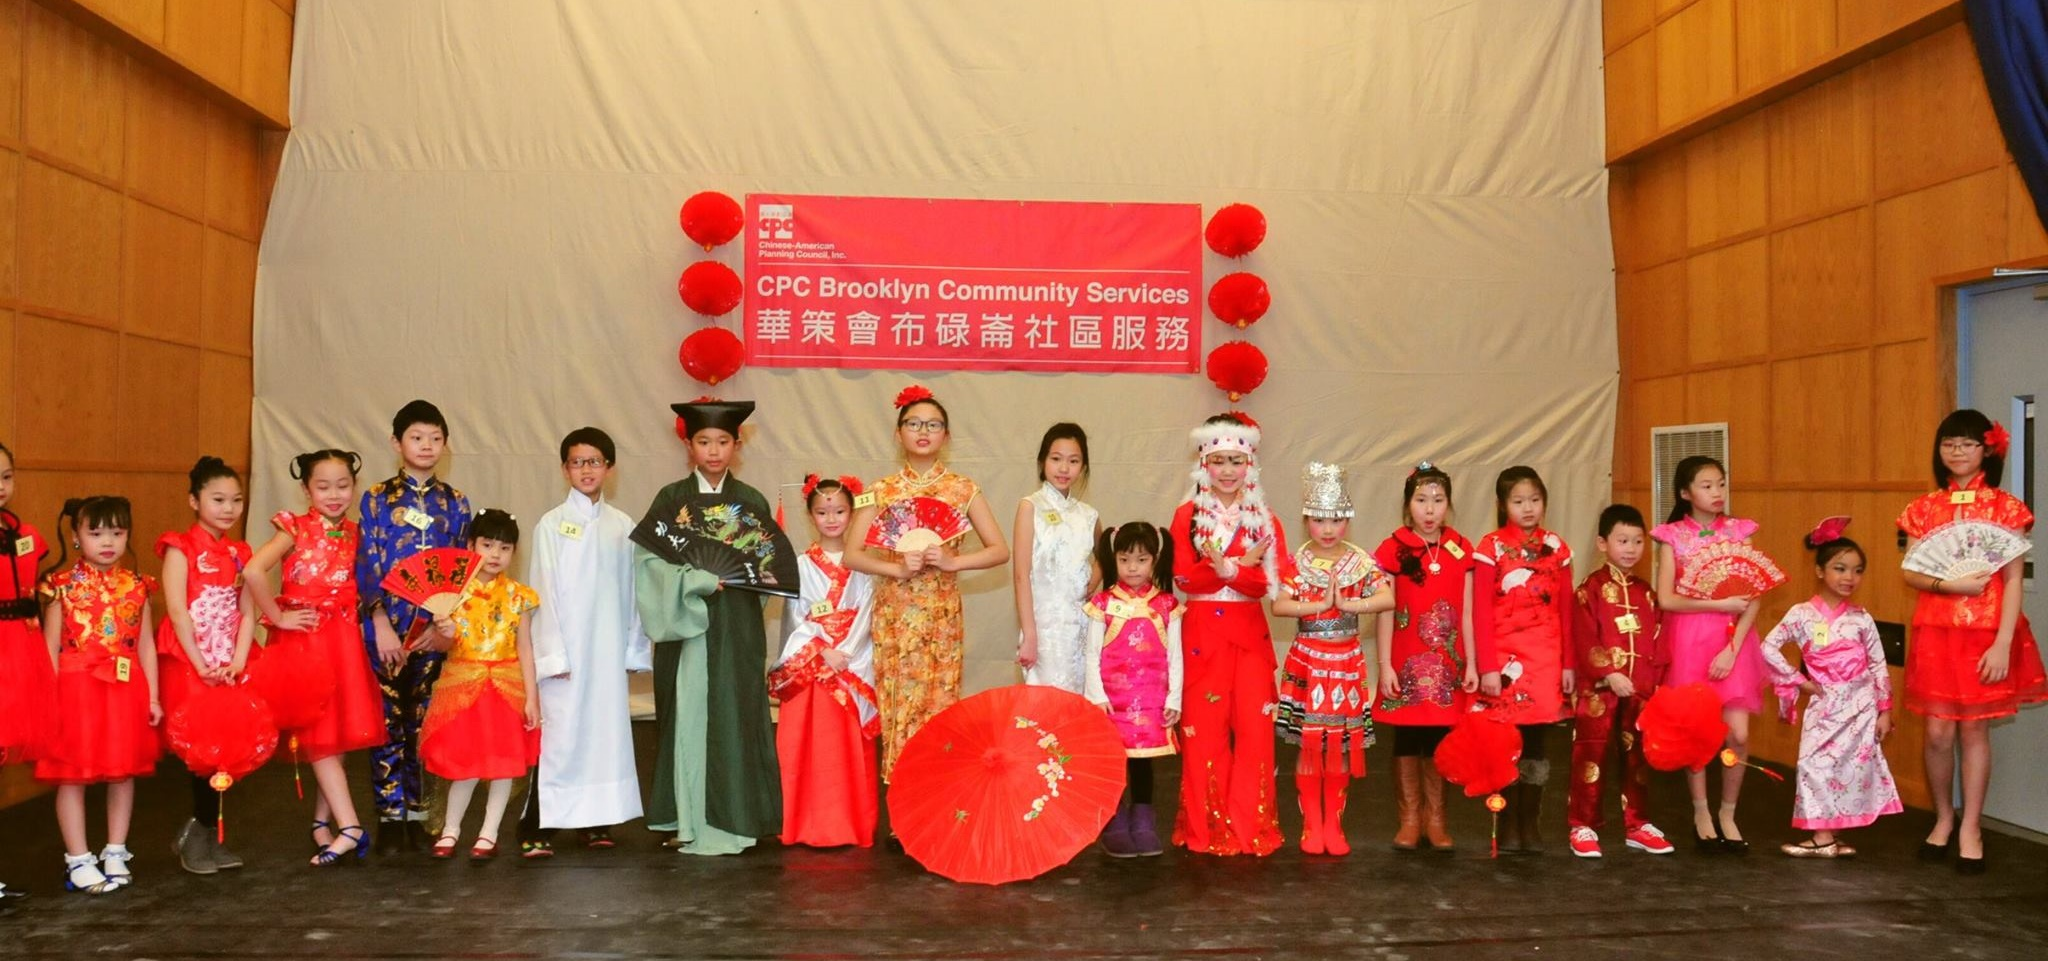 CPC Brooklyn Community Center Celebrates the Year of the Rooster